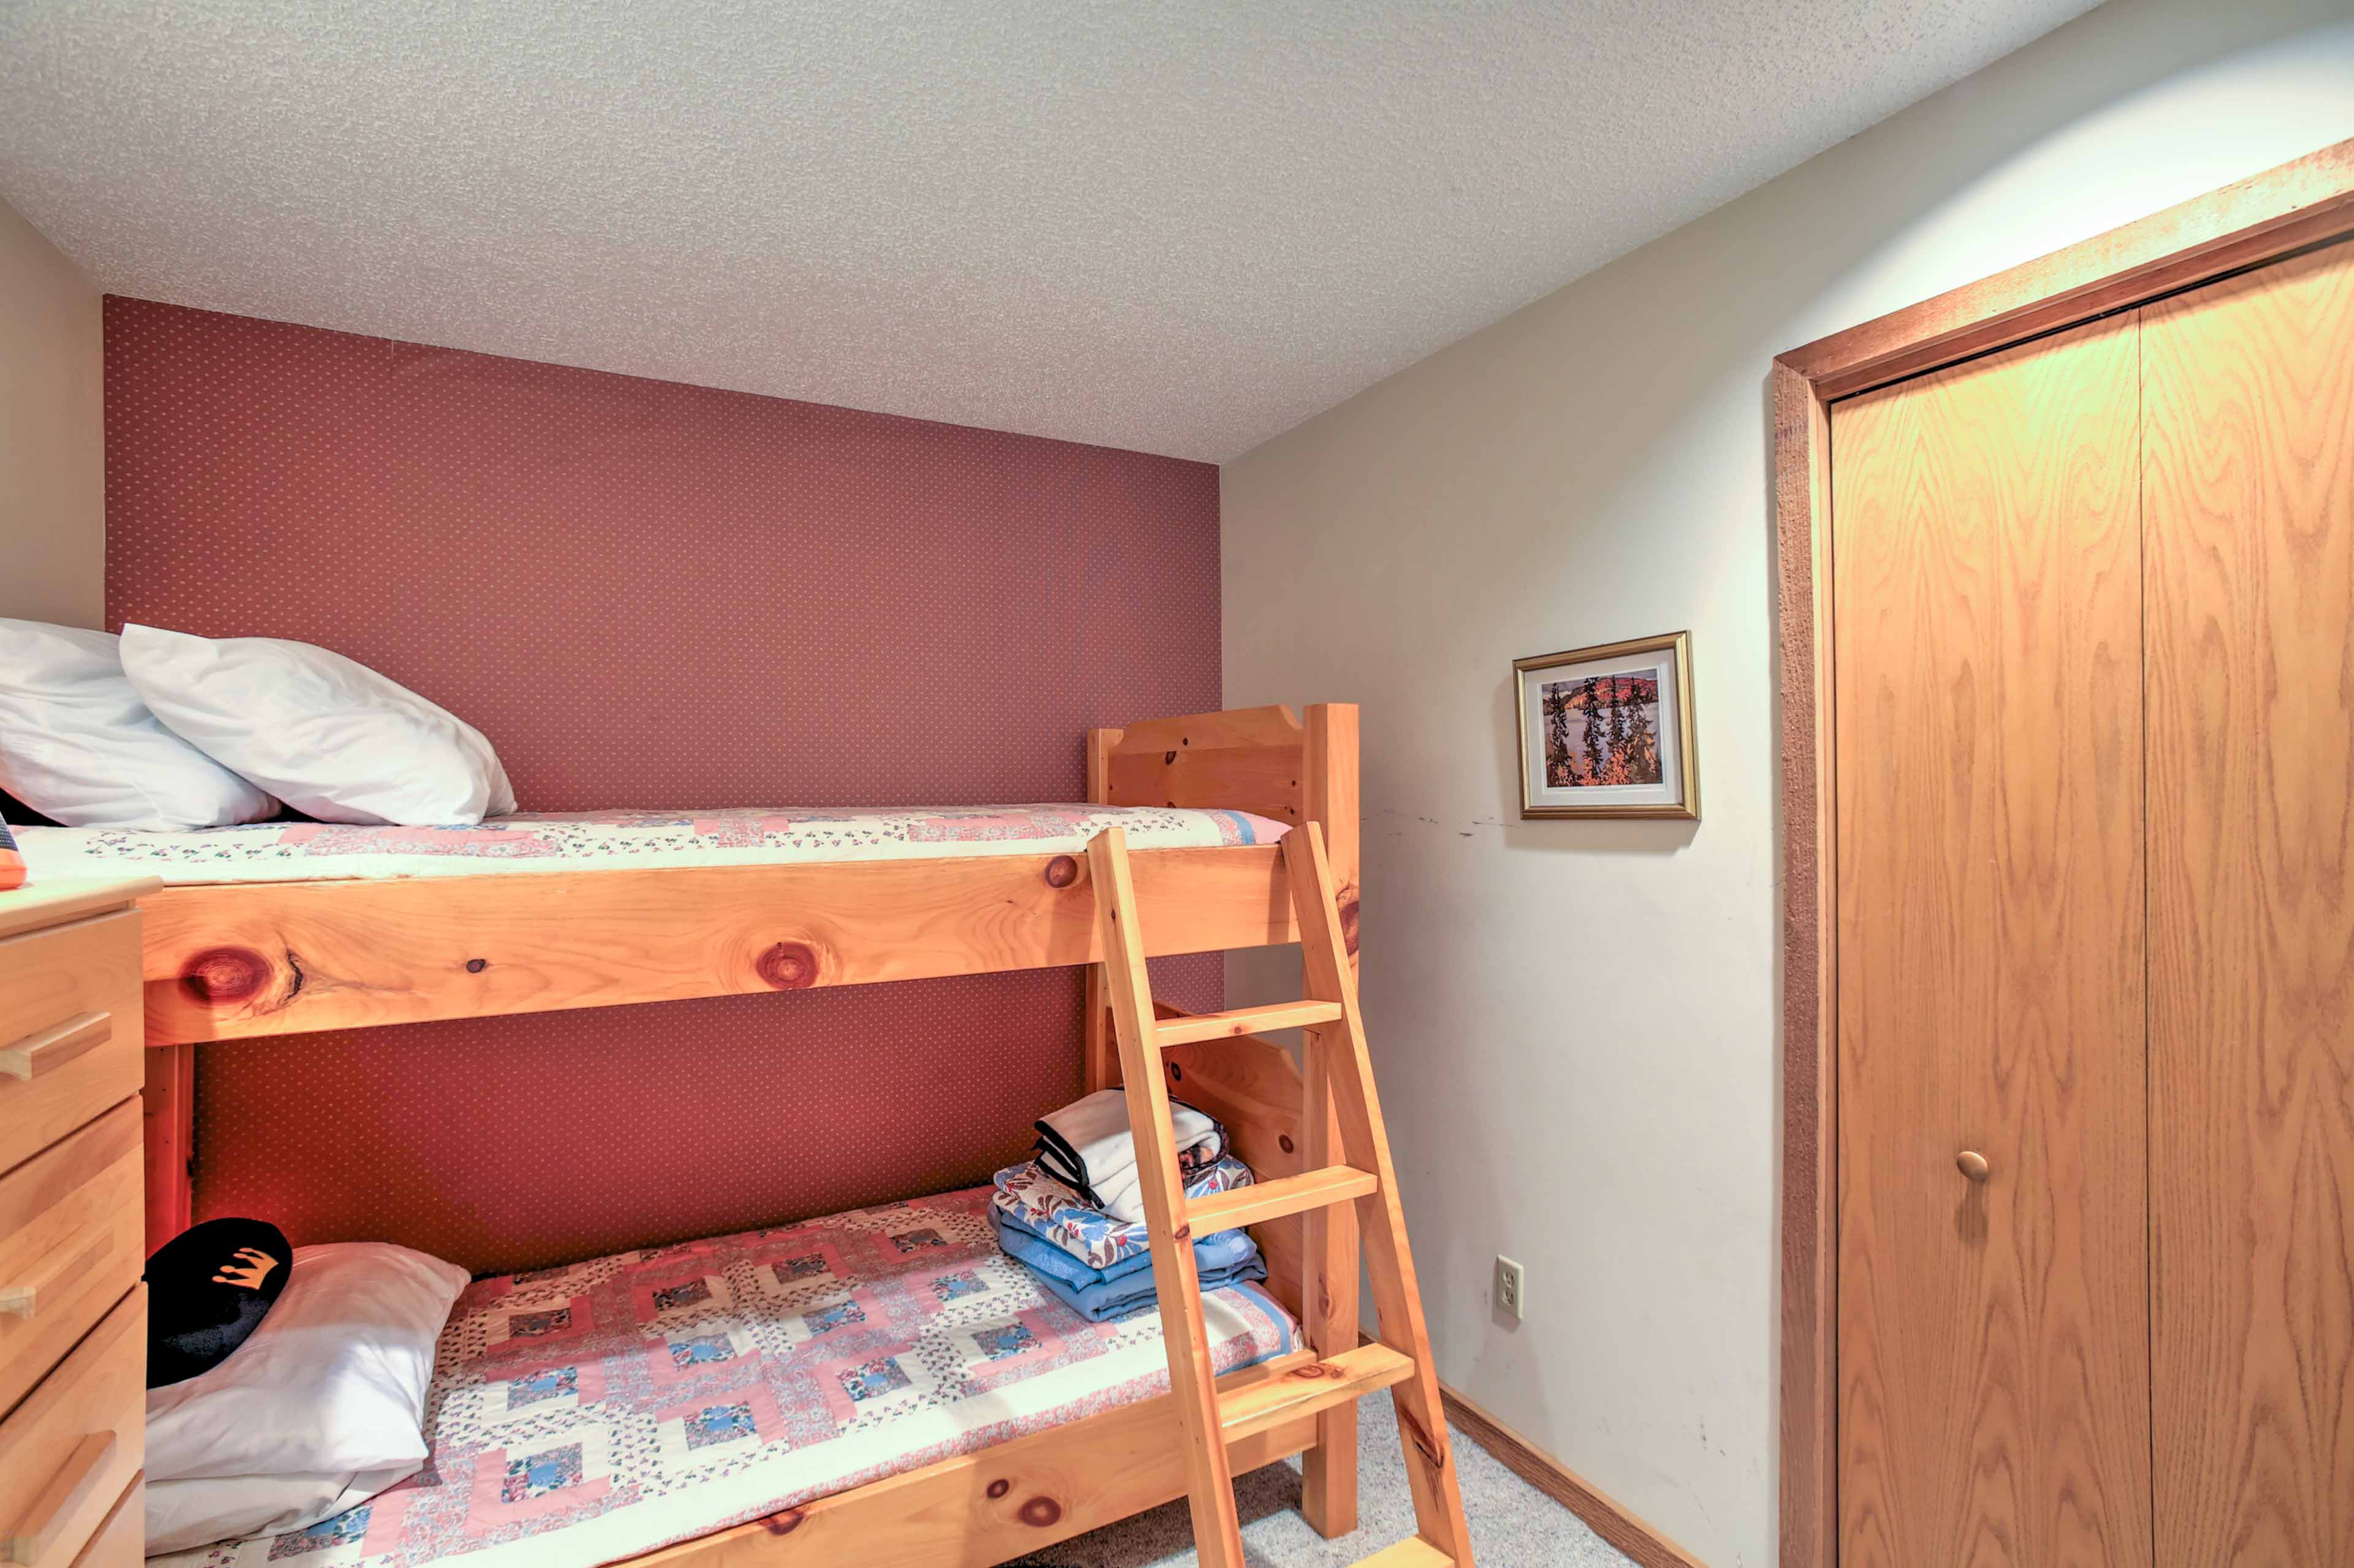 The second bedroom has twin-over-twin bunk beds and lovely wood furnishings.